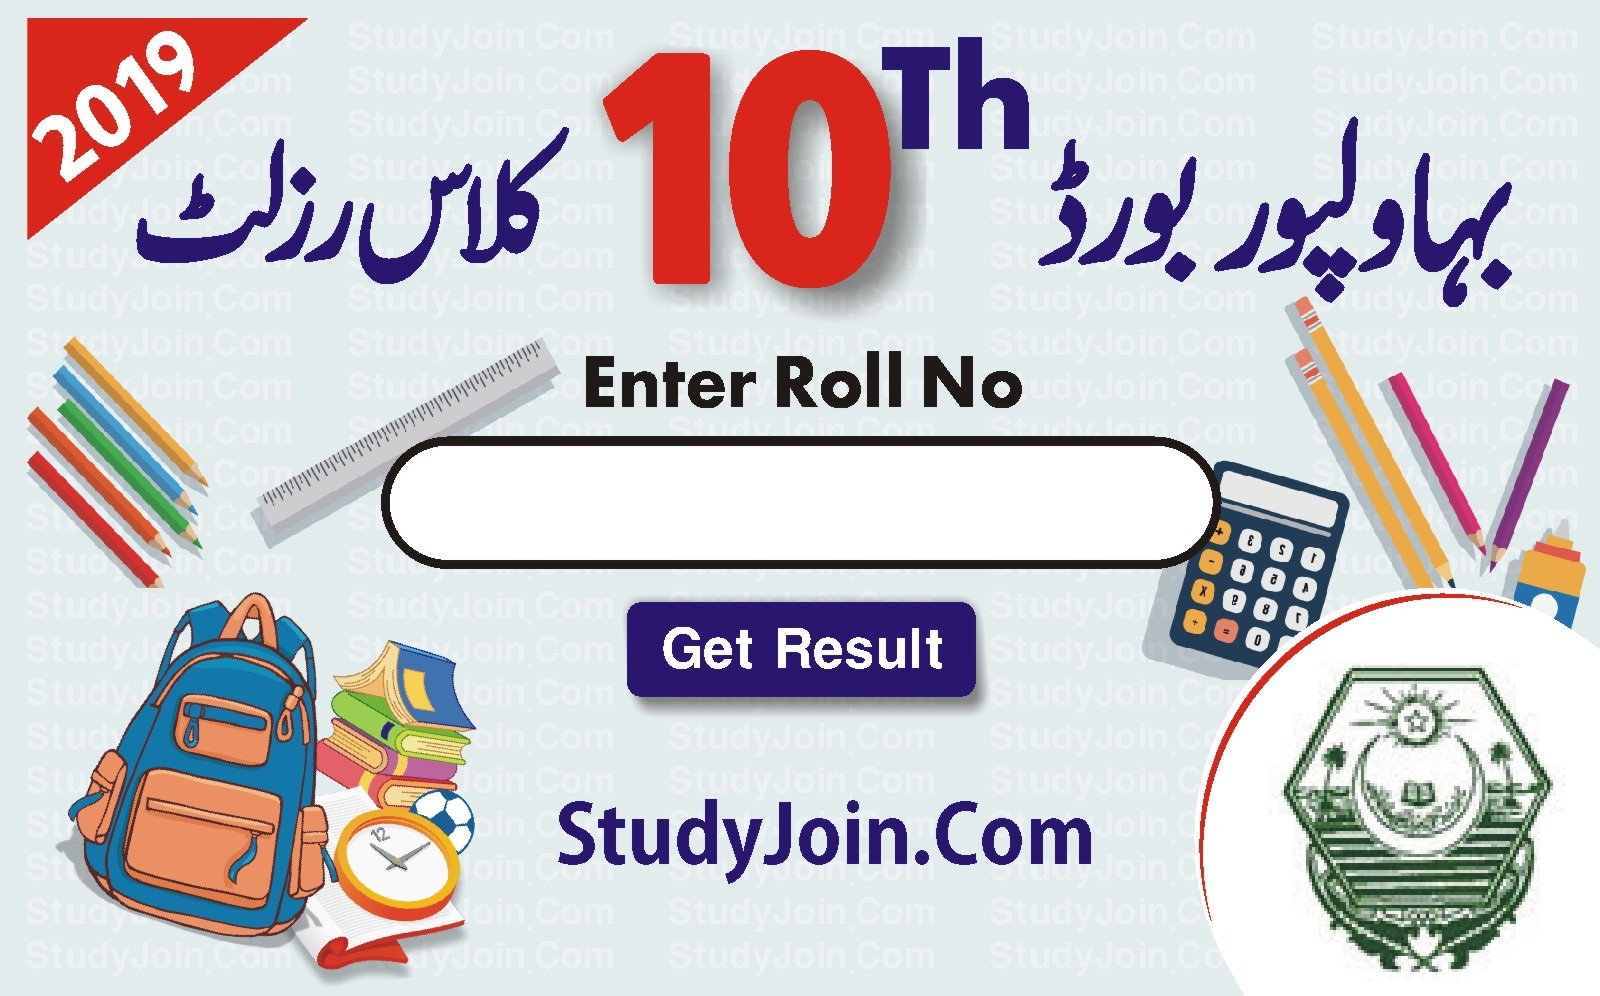 10th class result 2019 bahawalpur board, 10th class result 2019 bahawalpur board, bahawalpur board matric result 2019, bahawalpur board 10th result 2019, 10th class result 2019 bahawalpur board, bise bwp result 2019, 10th class result 2017 bahawalpur board search by name, bahawalpur board 9th result 2019, bise bwp date sheet 2019, bahawalpur board matric result 2019, bahawalpur board 9th result 2019, bise bwp result 2019, bise bwp matric result 2019, bise bwp roll no slip 2019